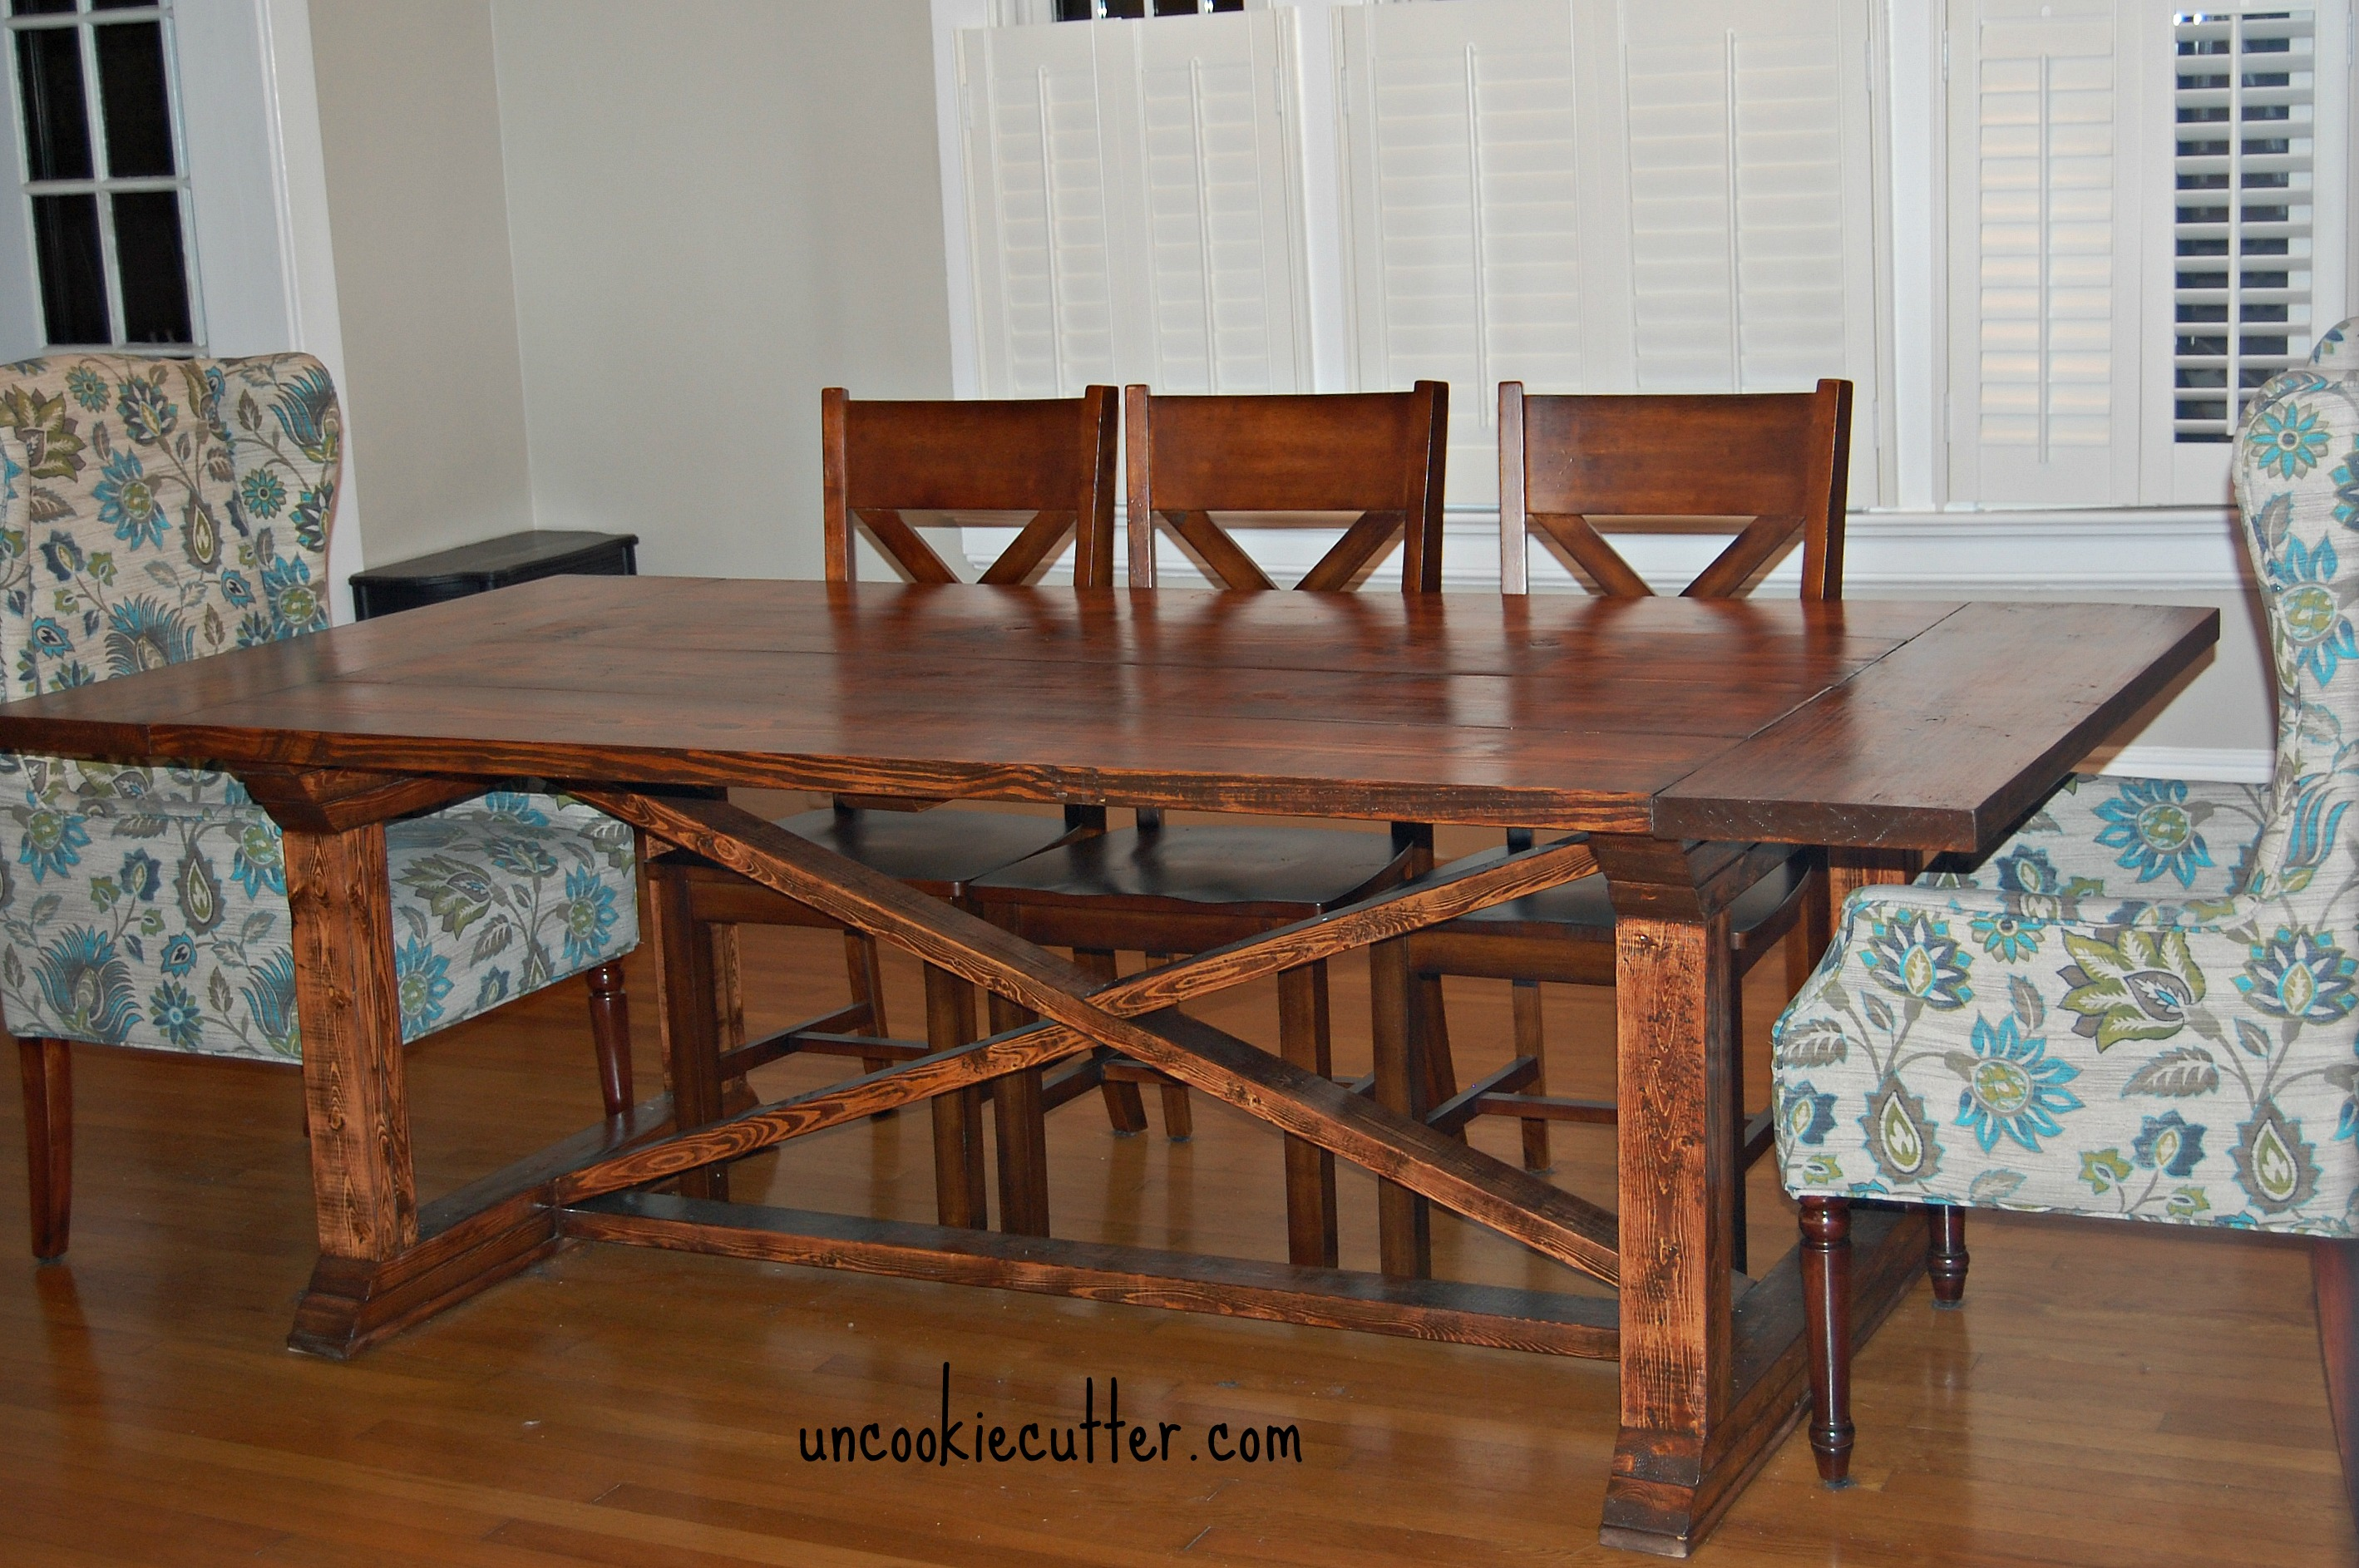 Use Ana White Plans To Create This DIY Dining Table With A Removable Top    Uncookiecutter